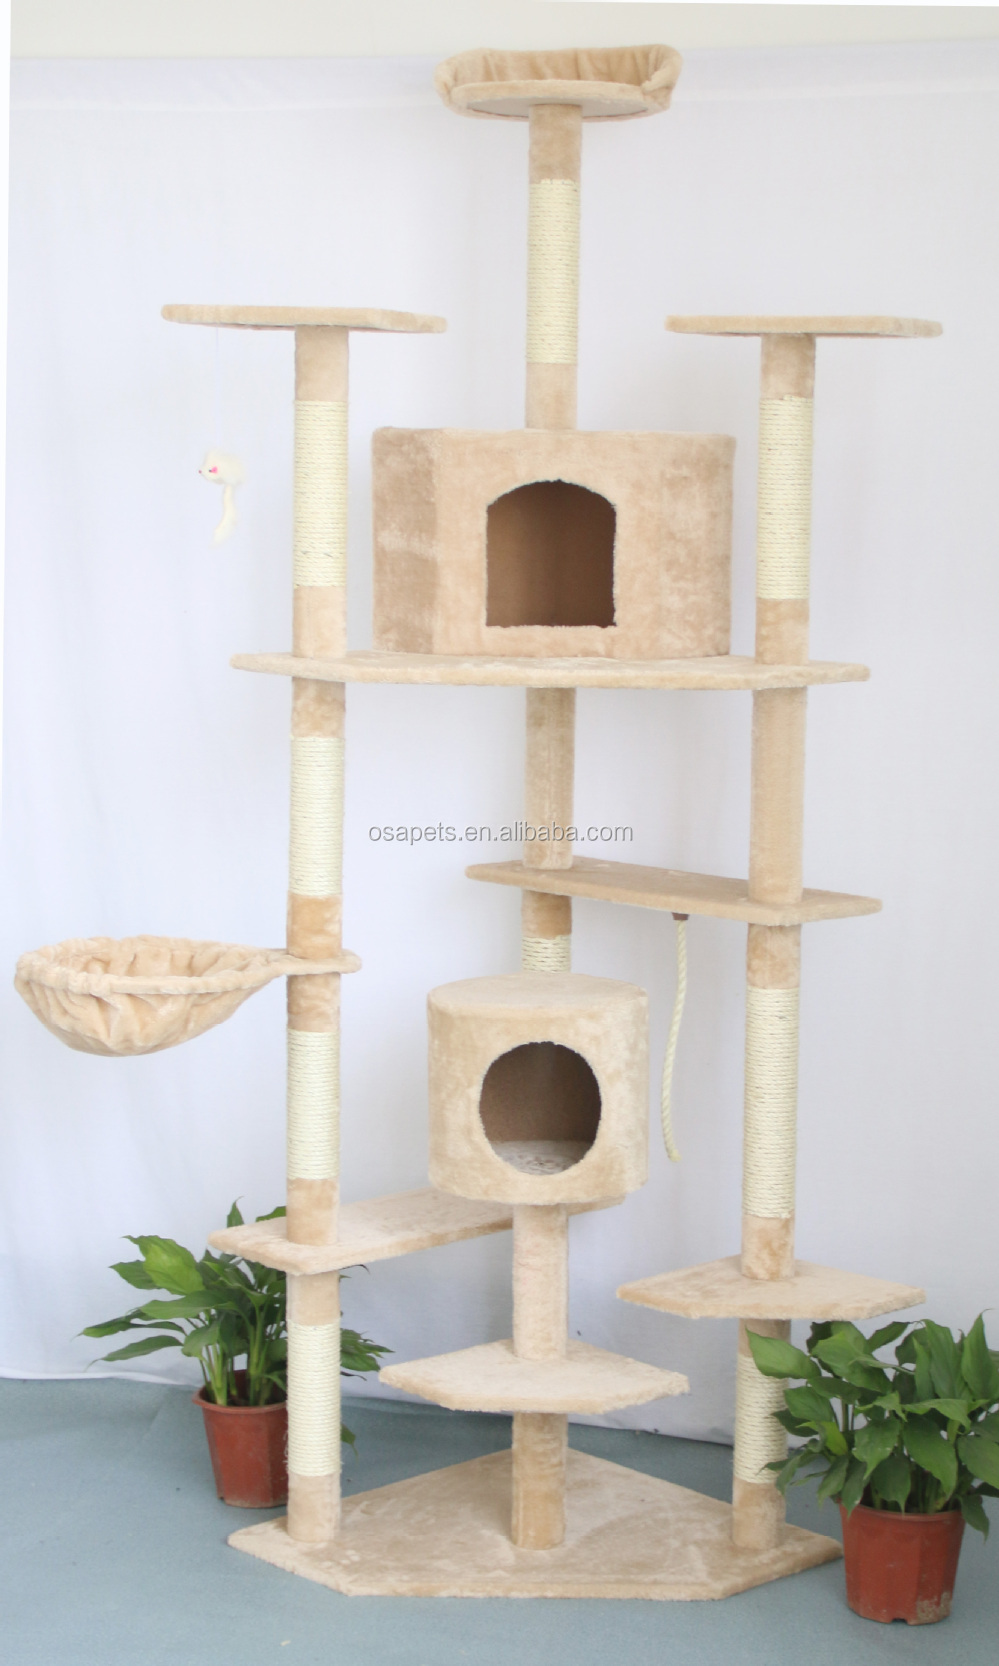 chat arbre chat maison naturel sisal corde jouets pour animaux domestiques id de produit. Black Bedroom Furniture Sets. Home Design Ideas